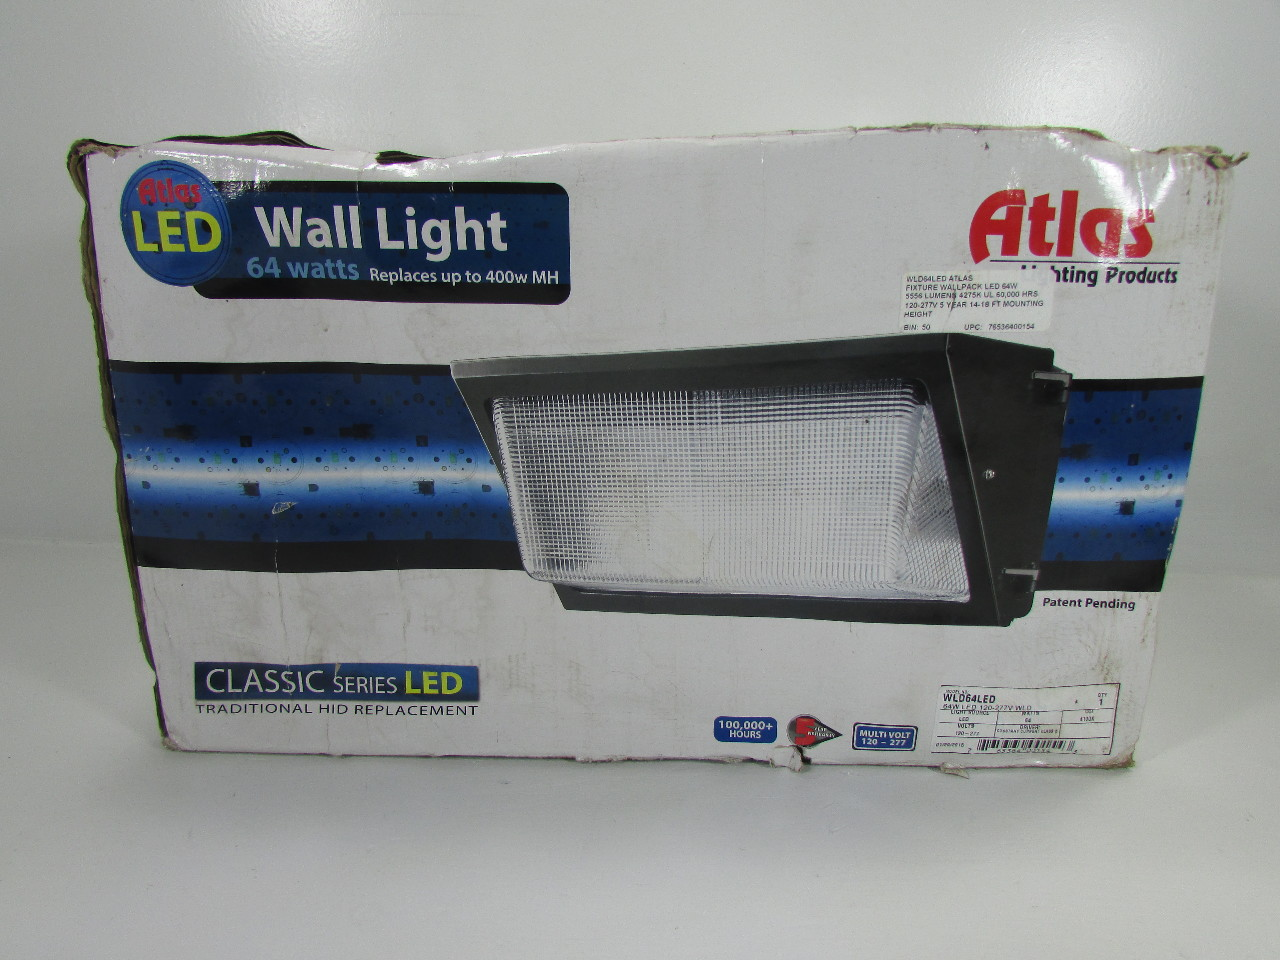 NEW ATLAS WLD64LED 64W LED WALL LIGHT 102 277V Premier Equipment Solutions